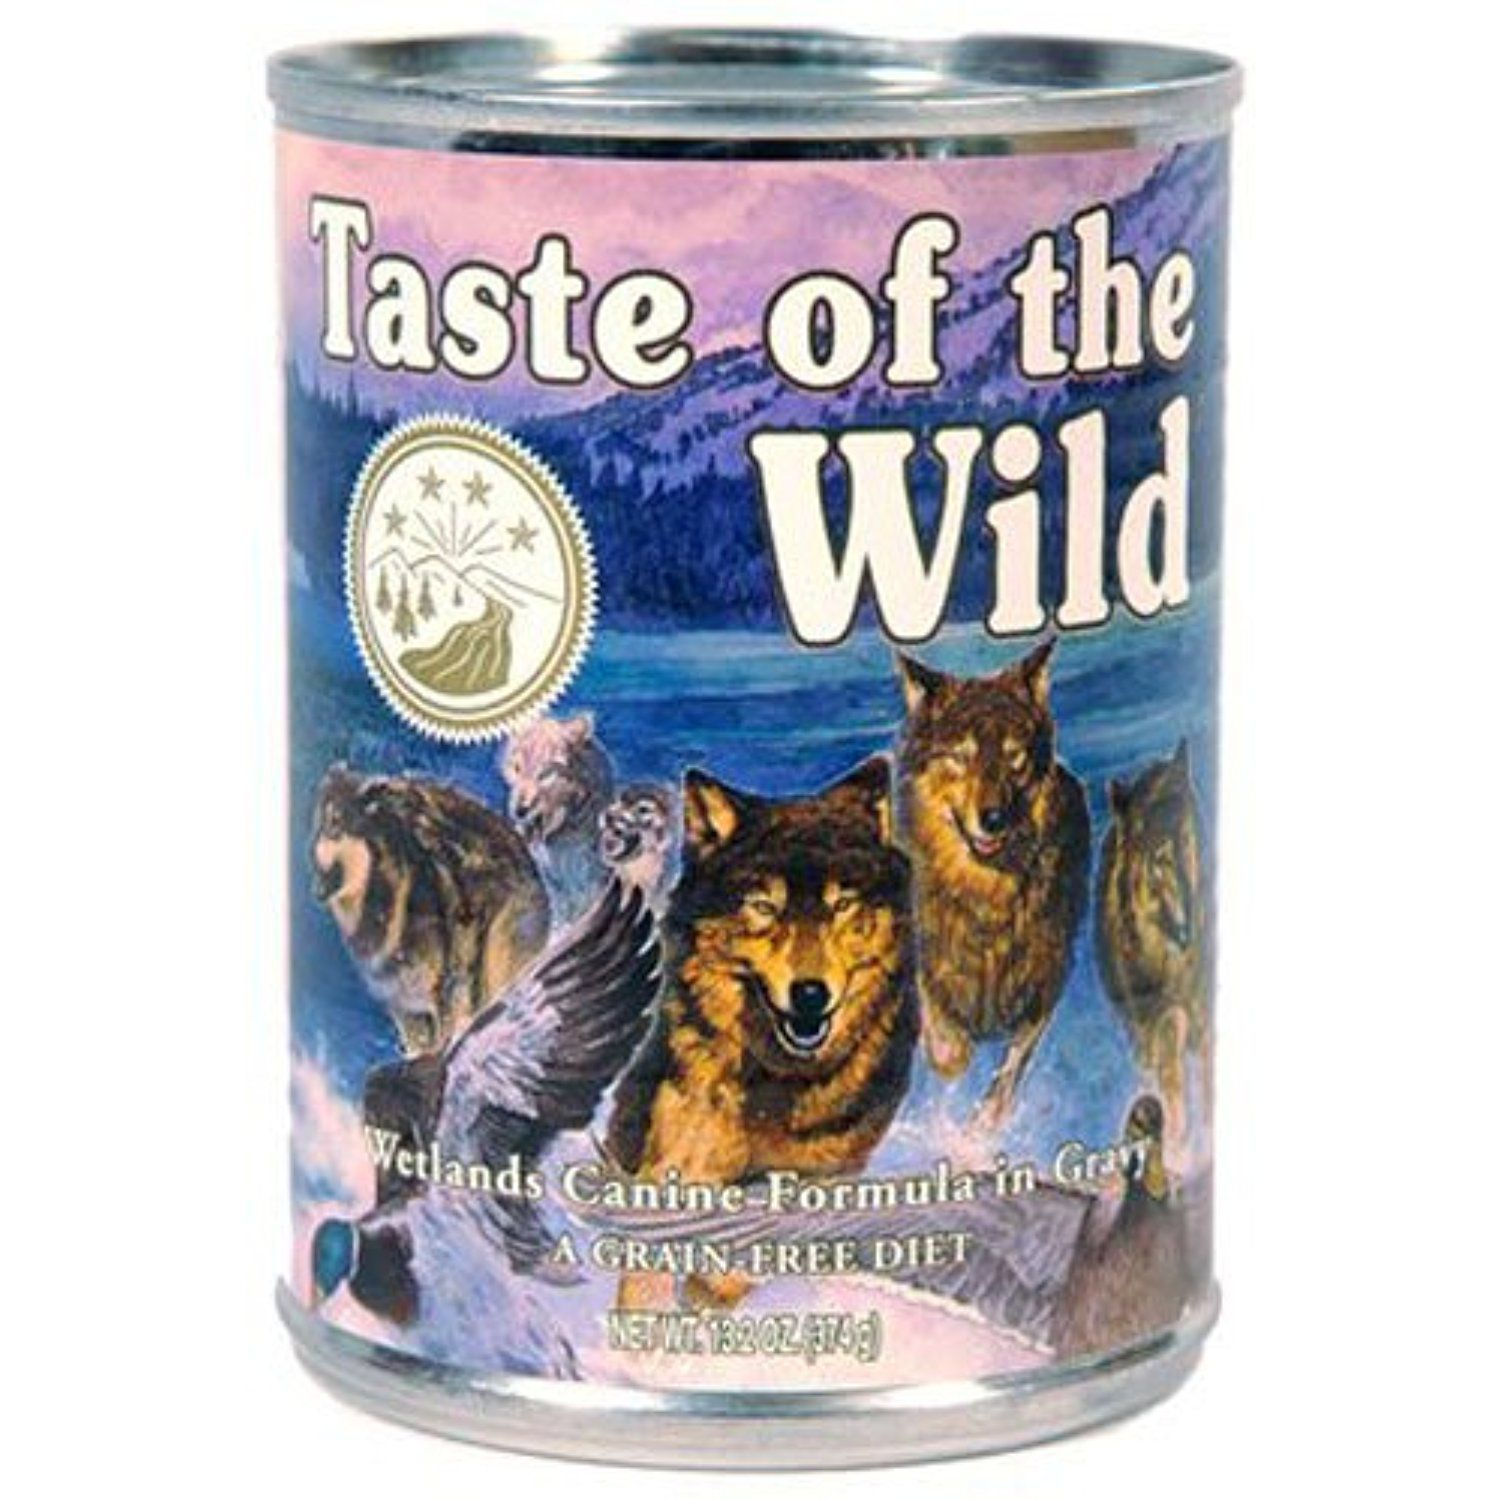 Taste of the wild fowl dog food 132ounce you can